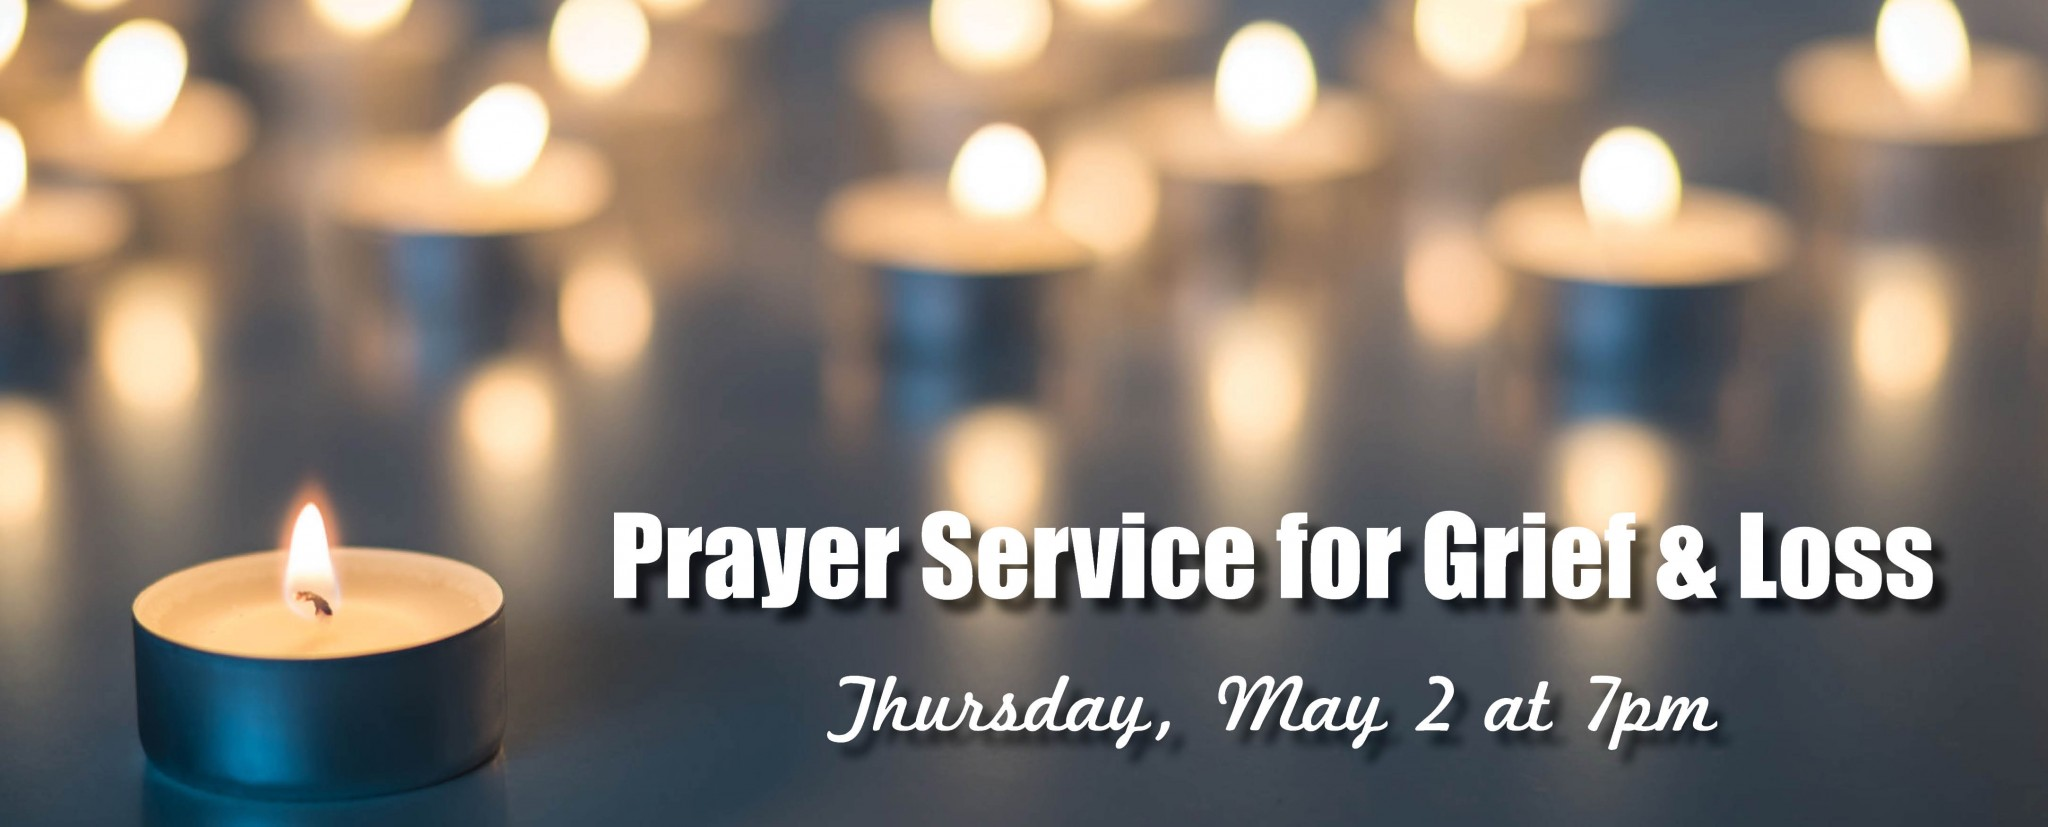 Prayer Service for Grief and Loss